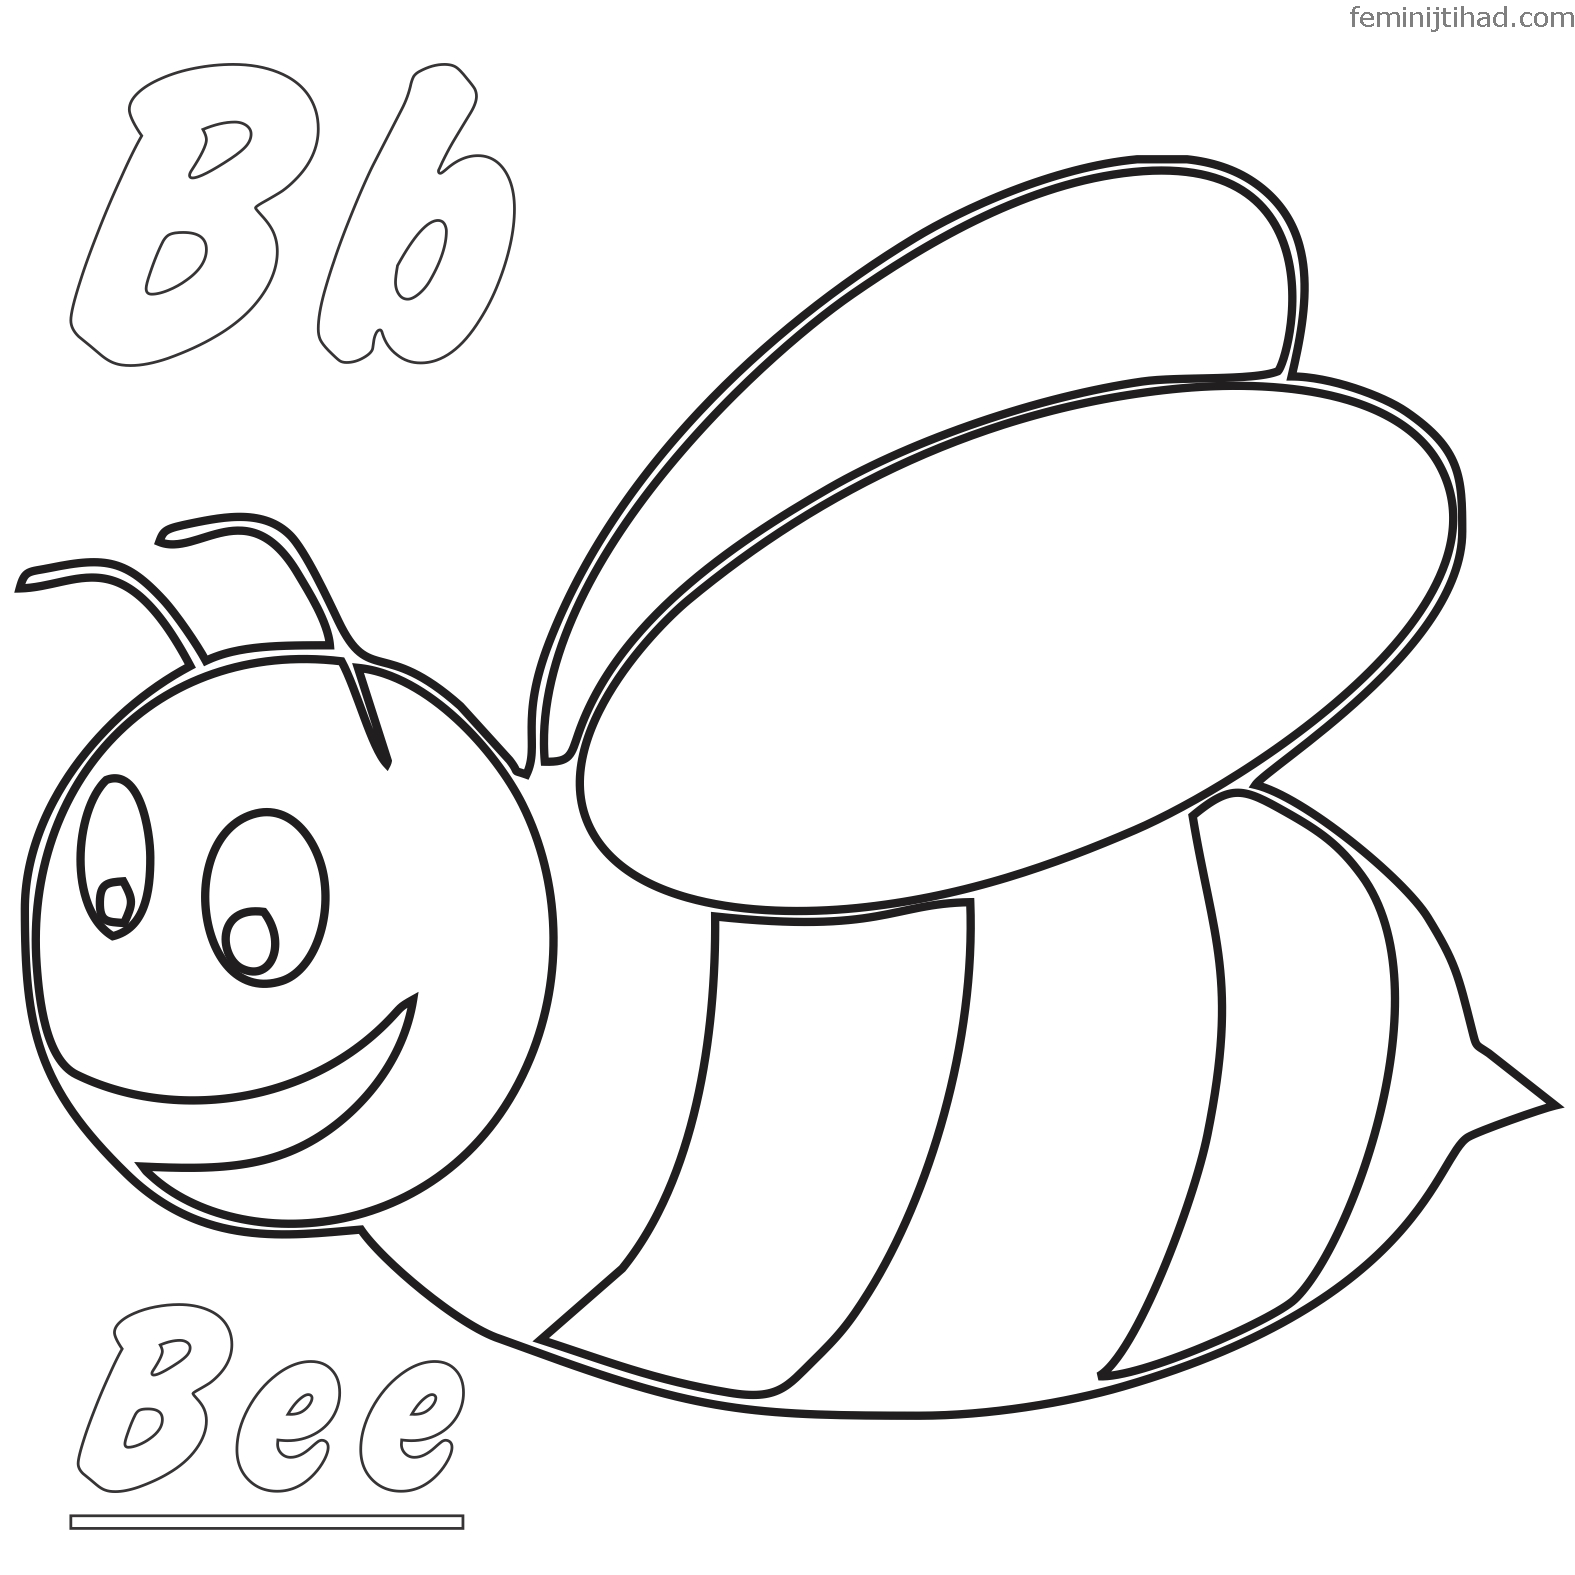 Bumblebee Coloring Pages Collection Bee Coloring Pages Bee Tags Animal Coloring Pages